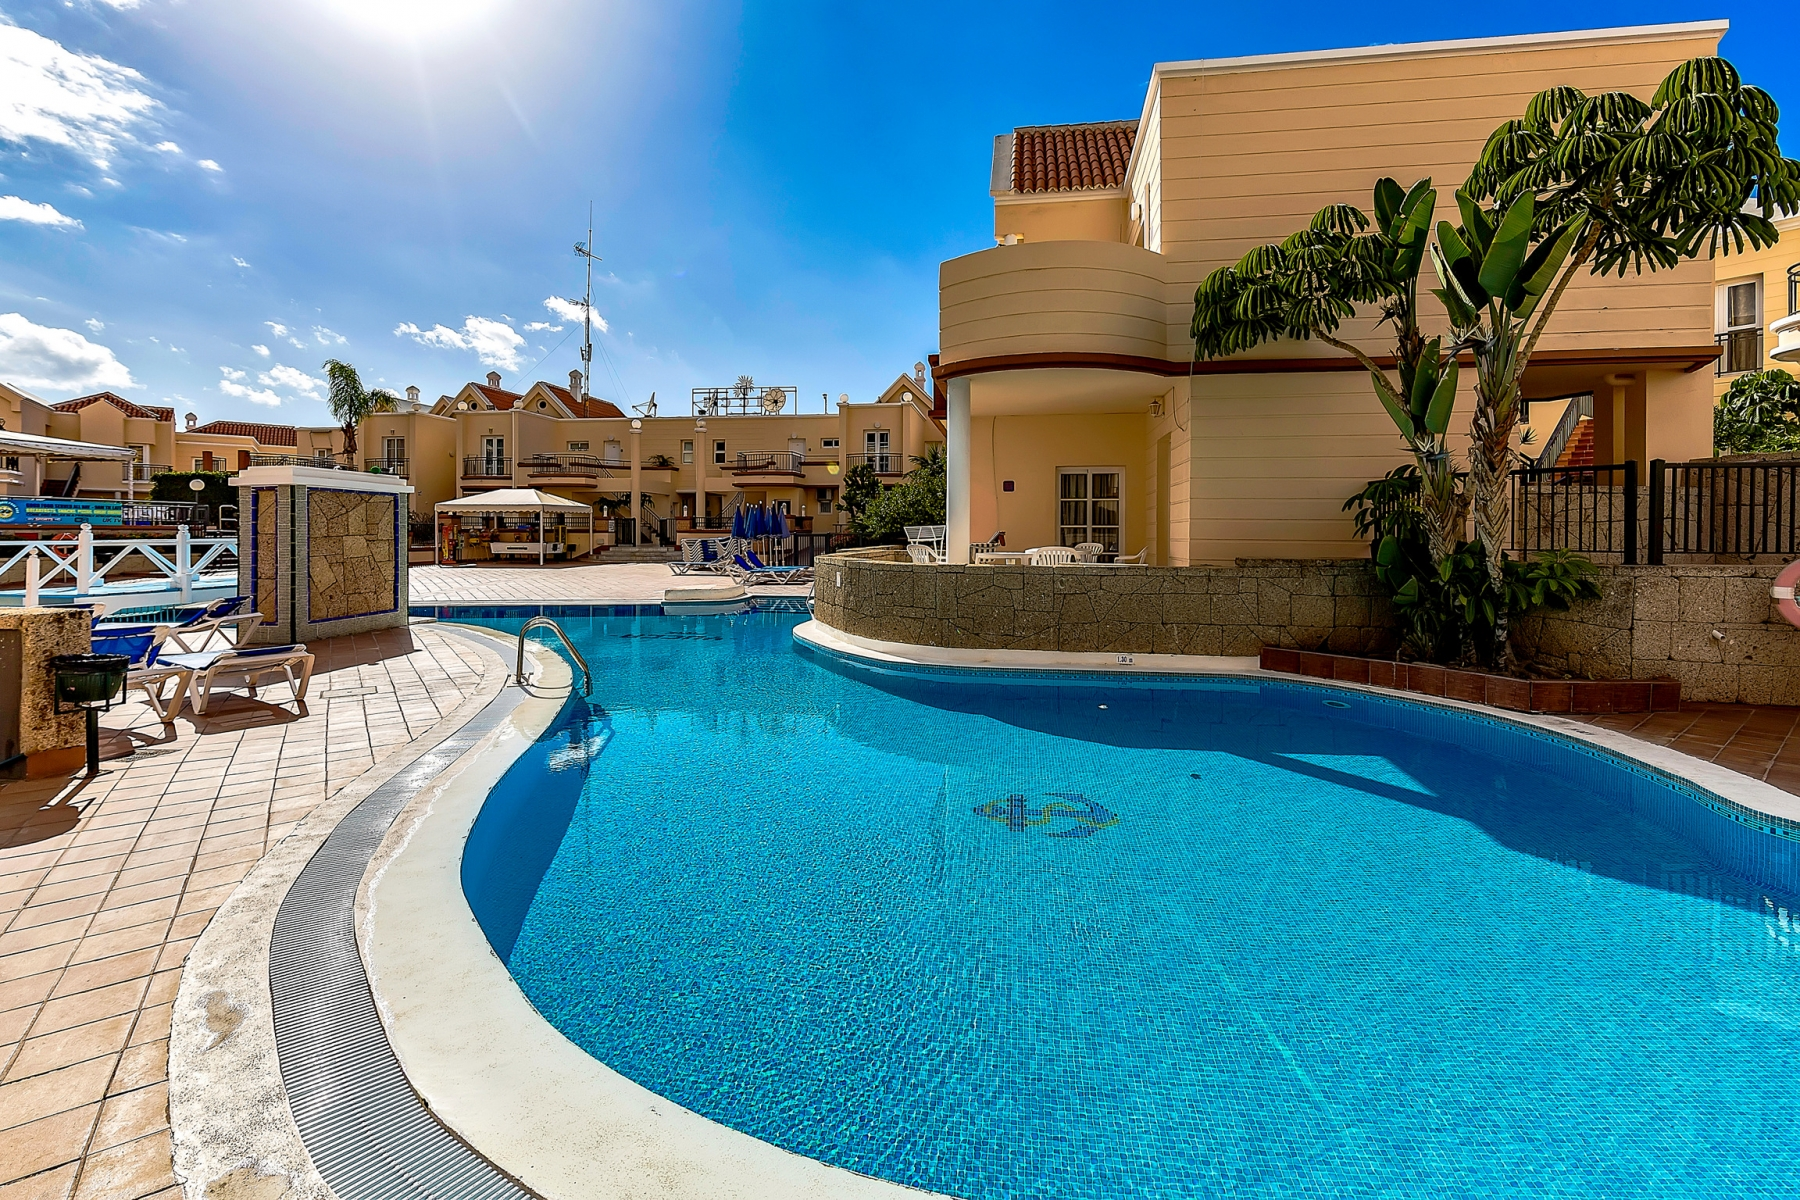 Properties for Sale in Tenerife, Canary Islands, Spain | SylkWayStar Real Estate. 1 bedroom apartment Yucca Park. Image-22542